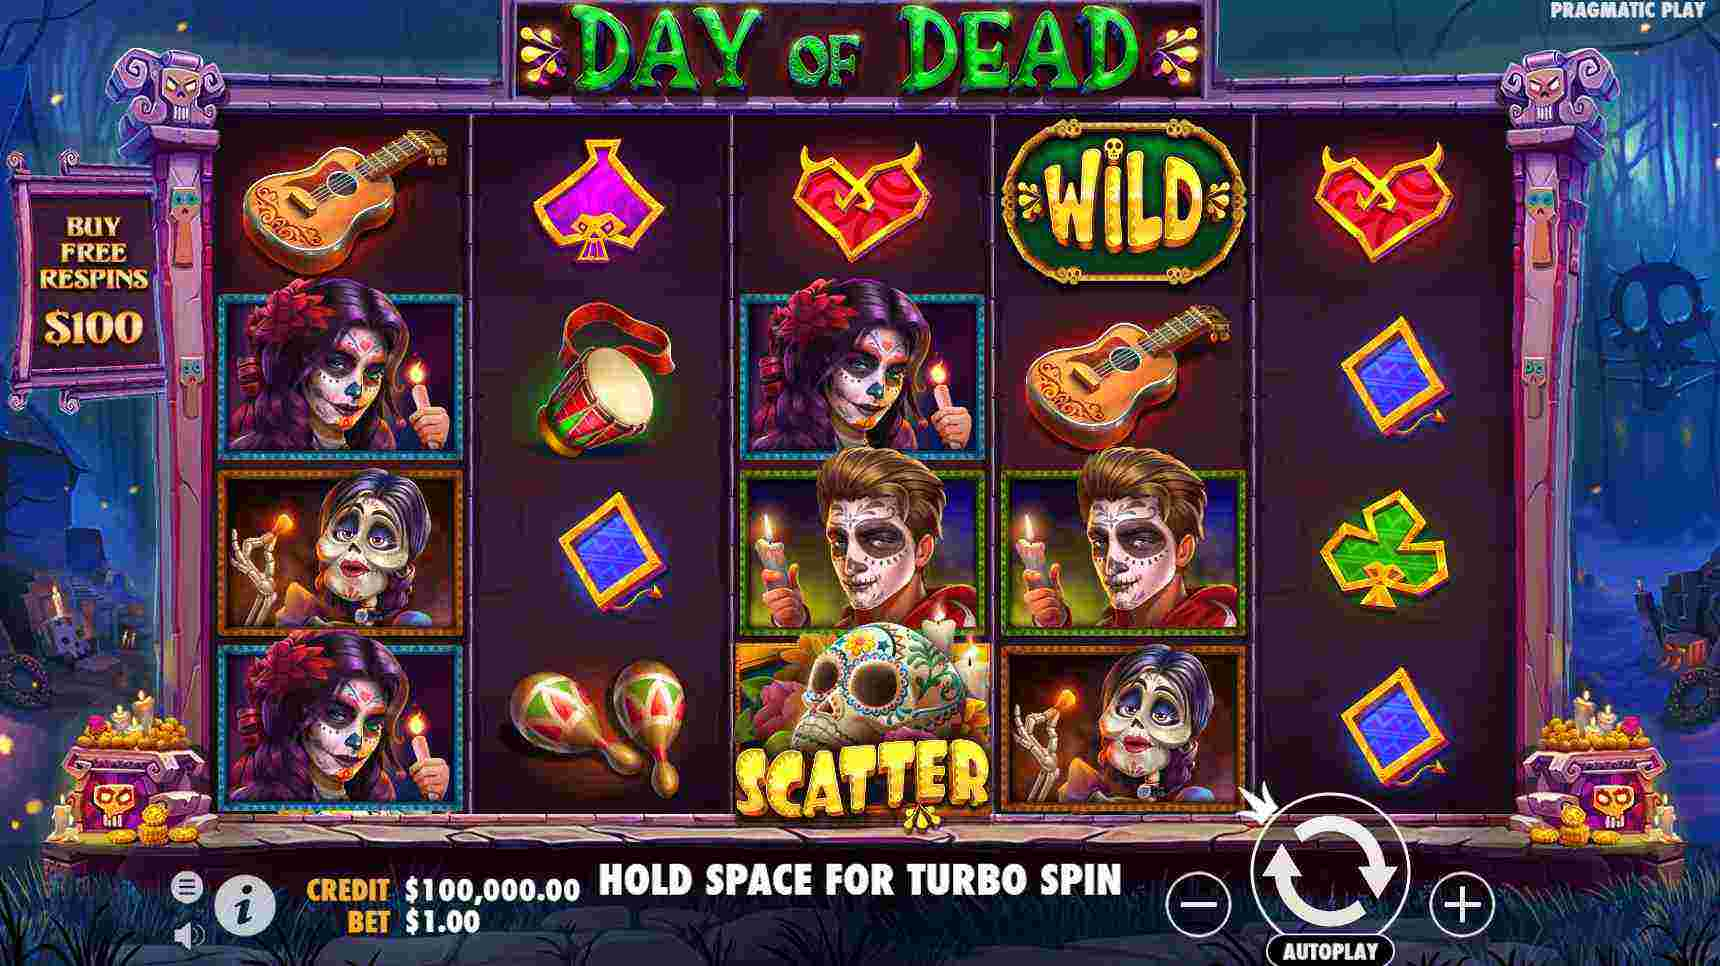 Day of Dead Slot Base Game